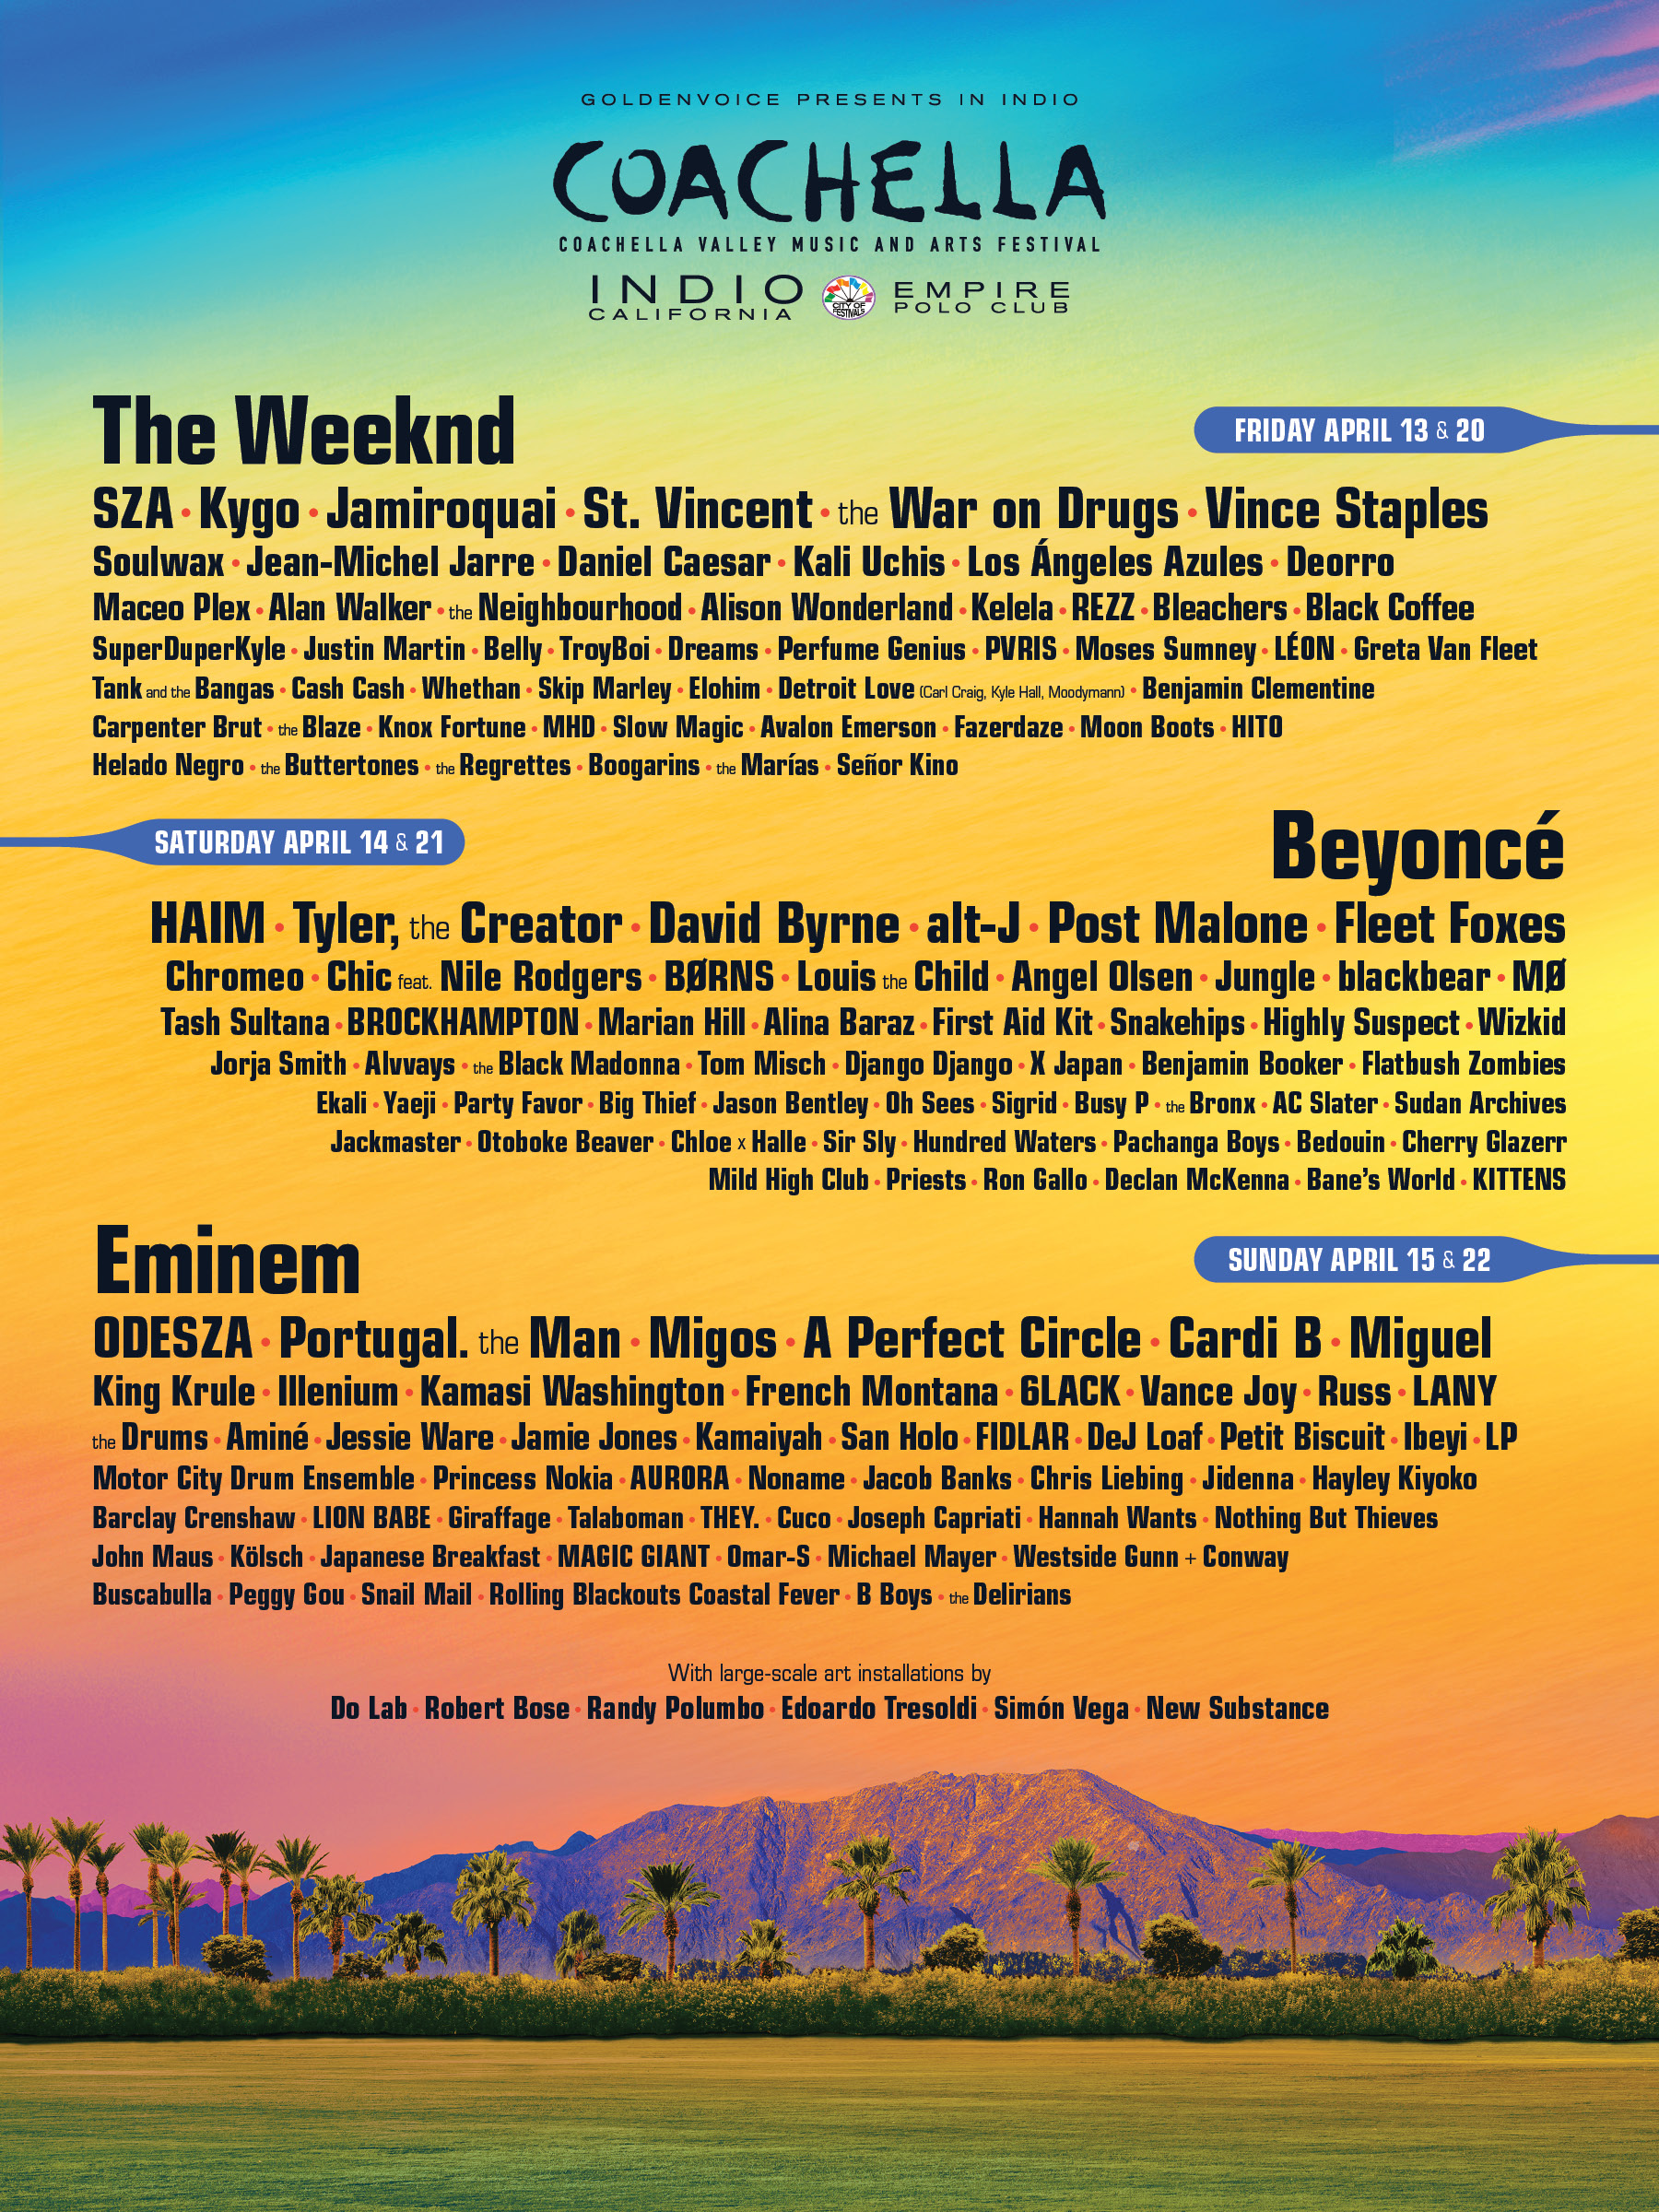 Coachella line up 2018 Beyoncé